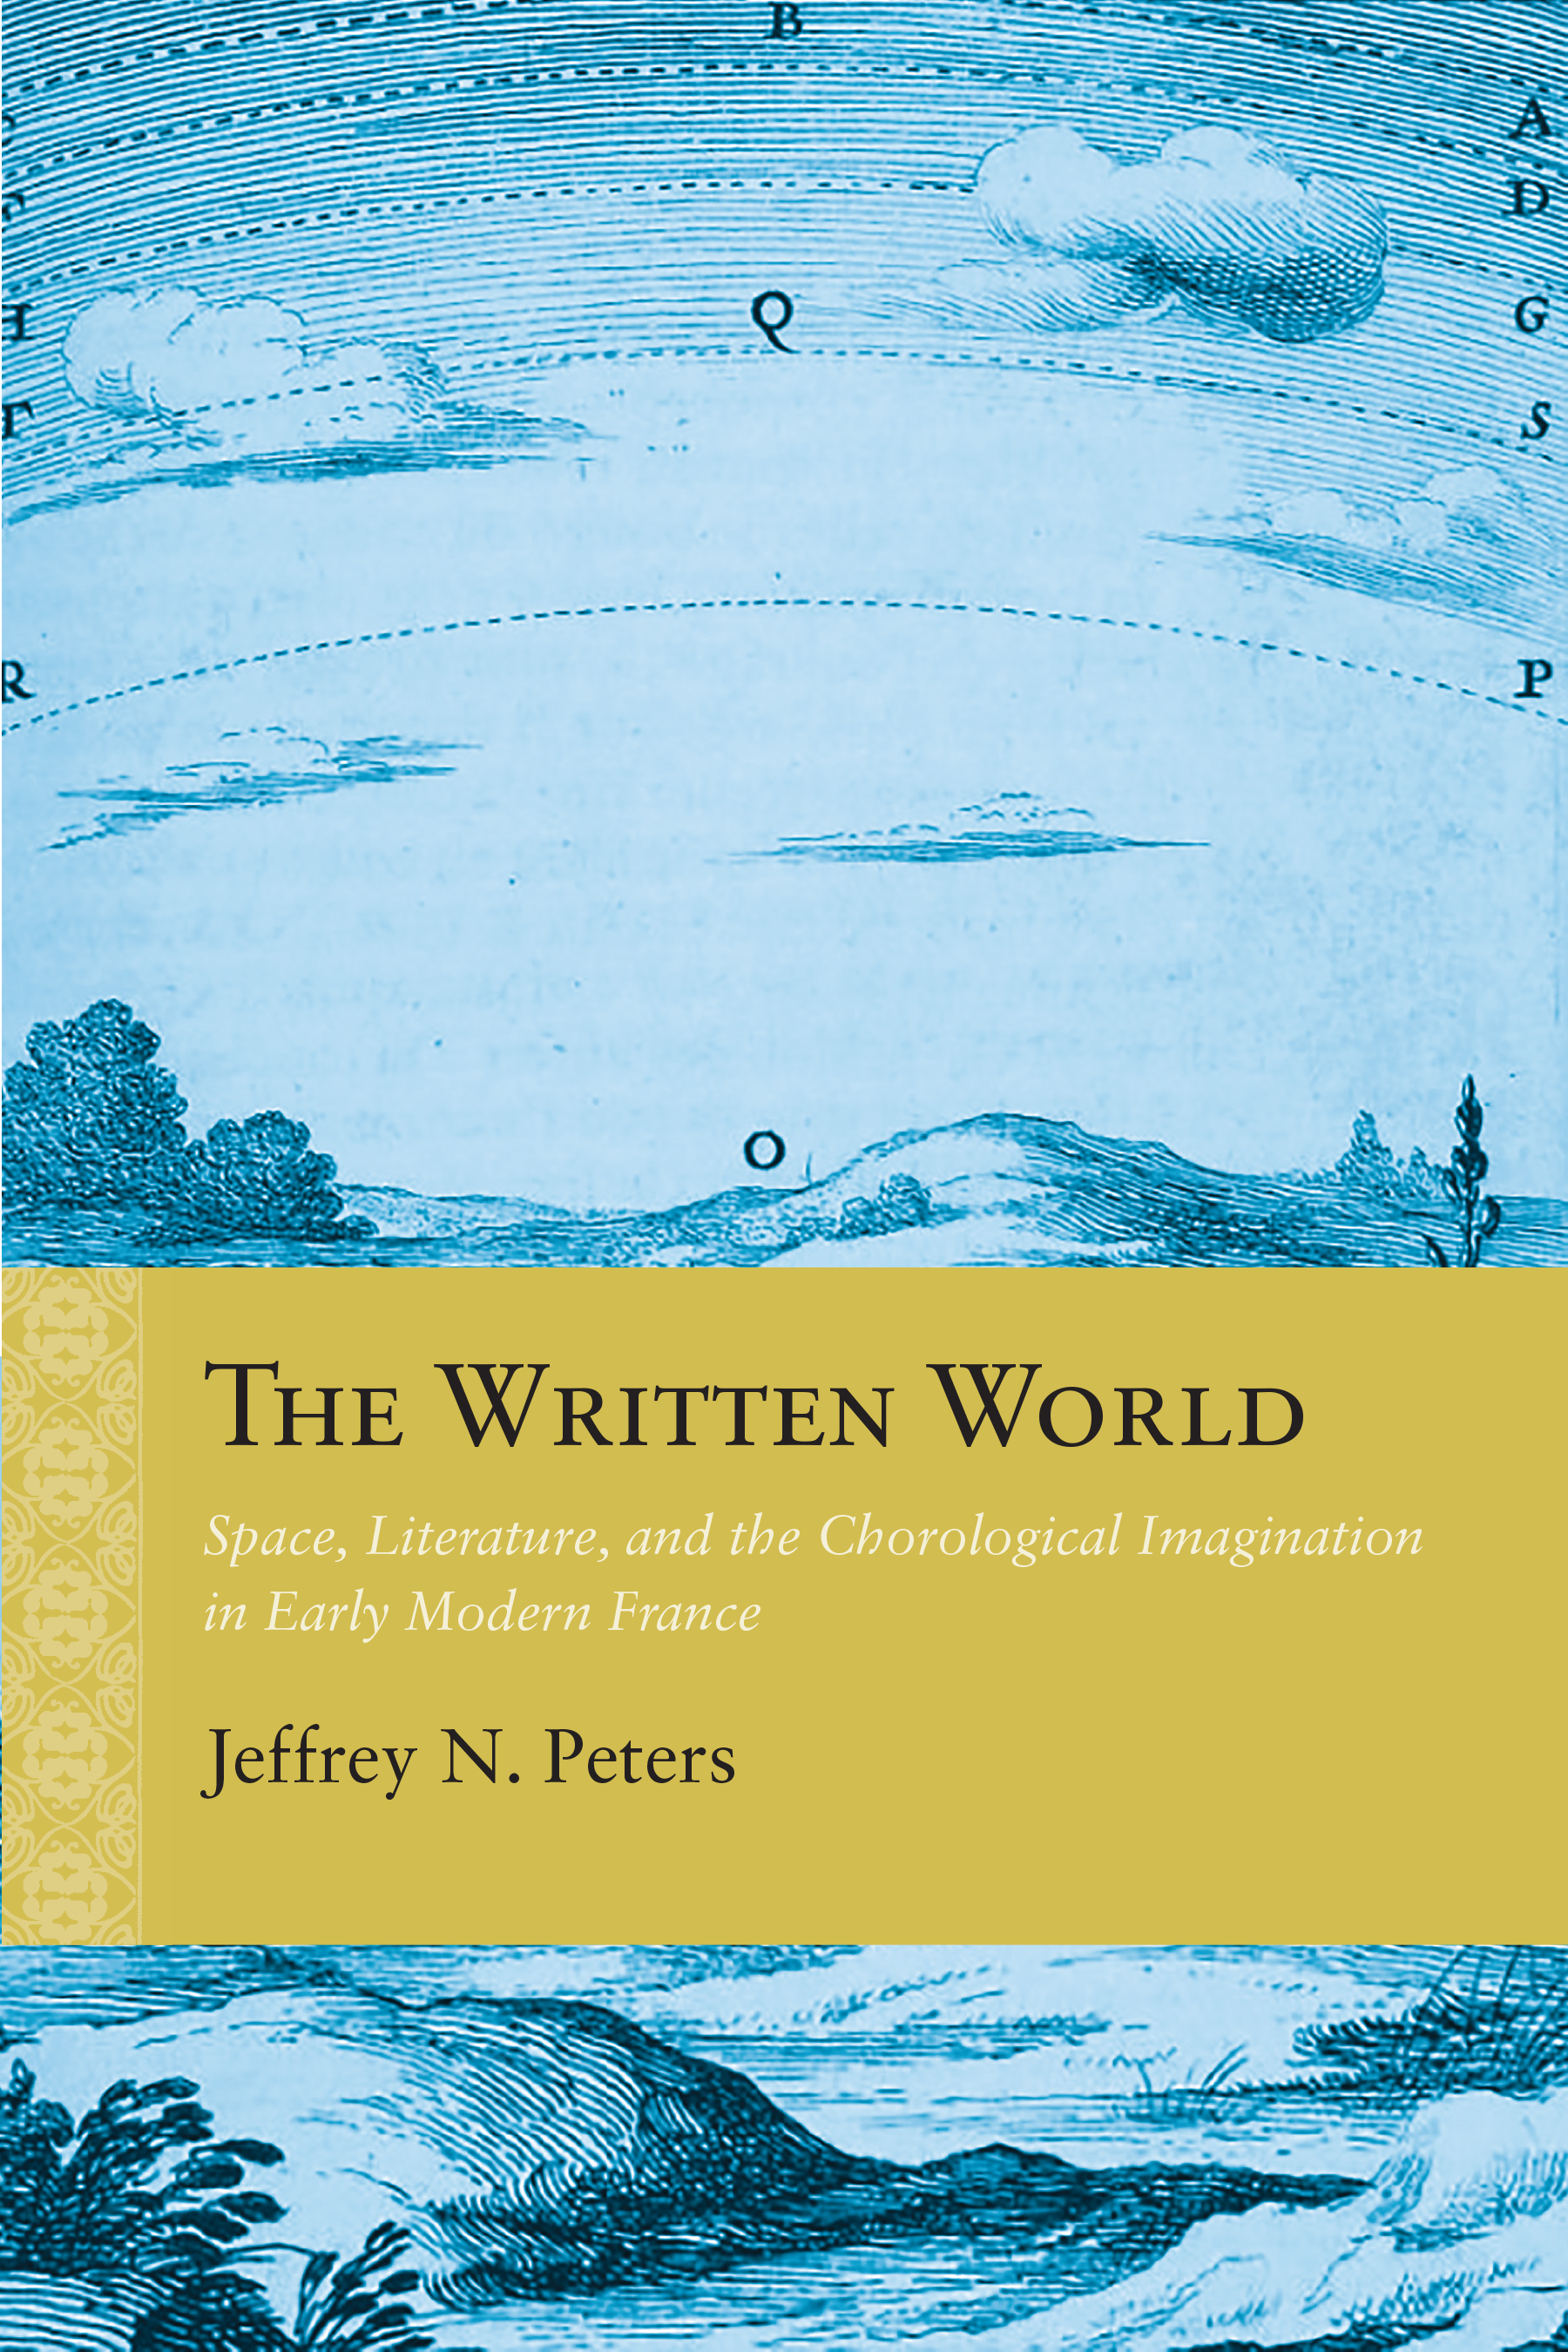 J. N. Peters, The Written World. Space, Literature, and the Chorological Imagination in Early Modern France